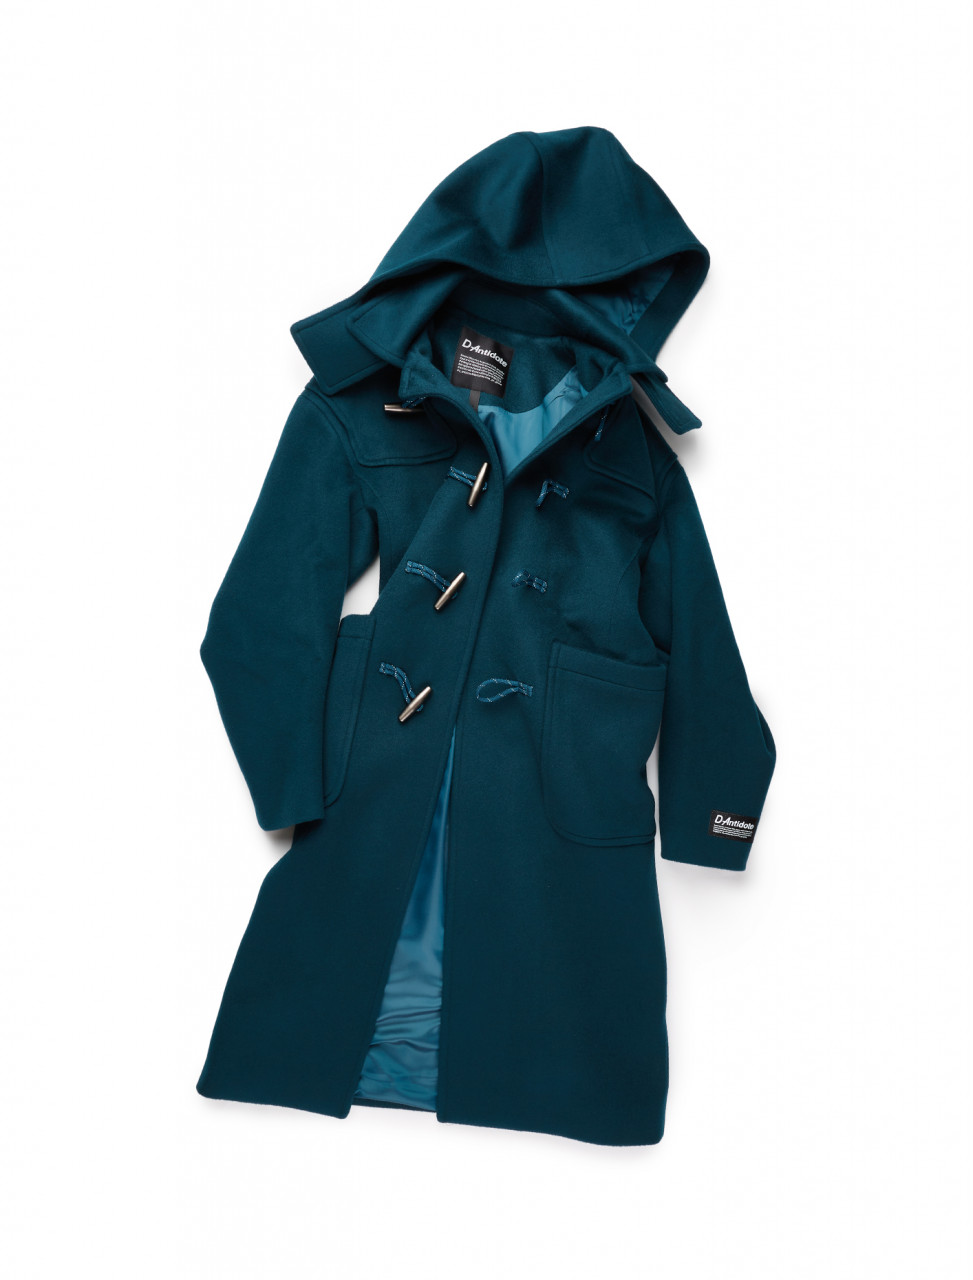 351-D20FWCT003U D-ANTIDOTE DUFFLE COAT DARK GREEN